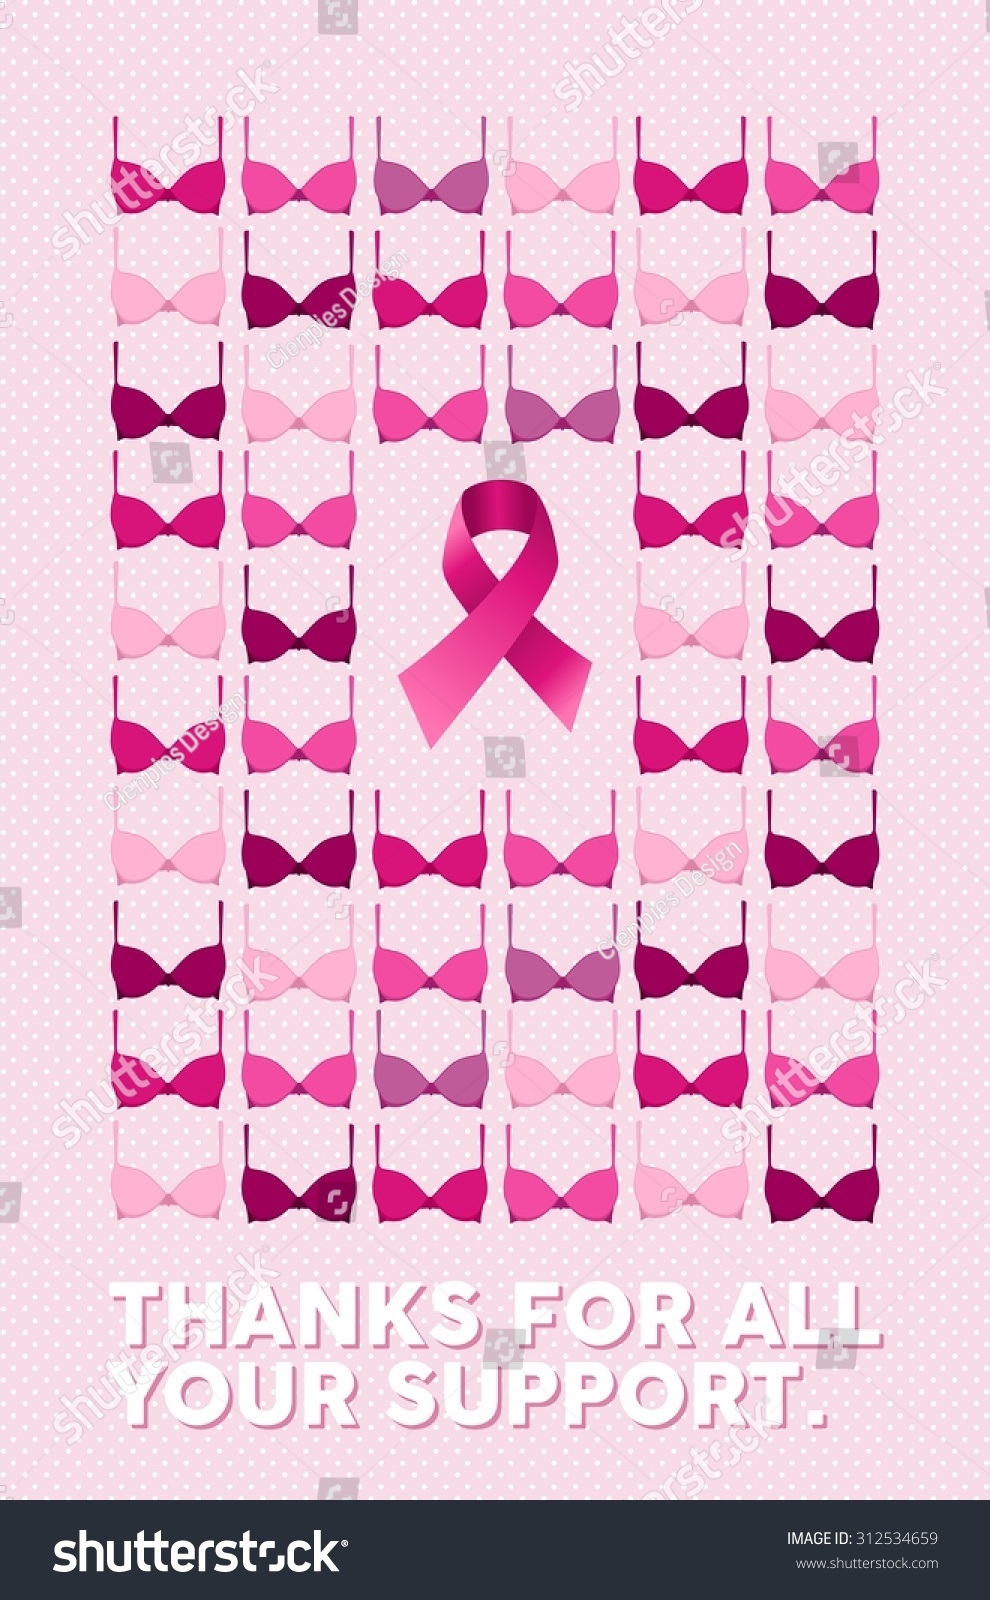 central idea breast cancer